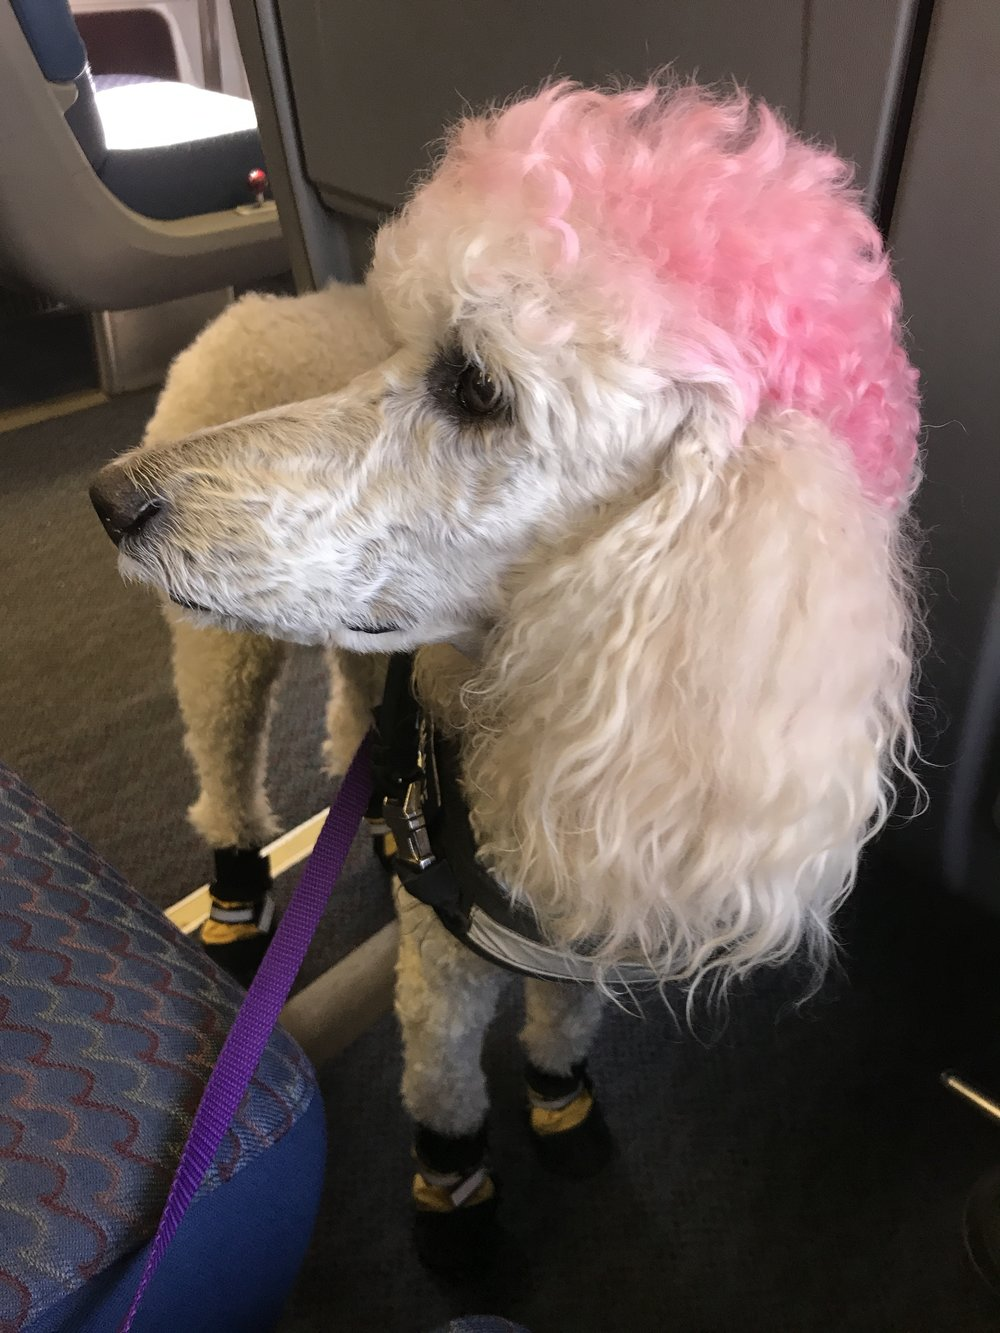 Co-founder's first Mobility Service Dog Phoebe. Scroll down for her story!